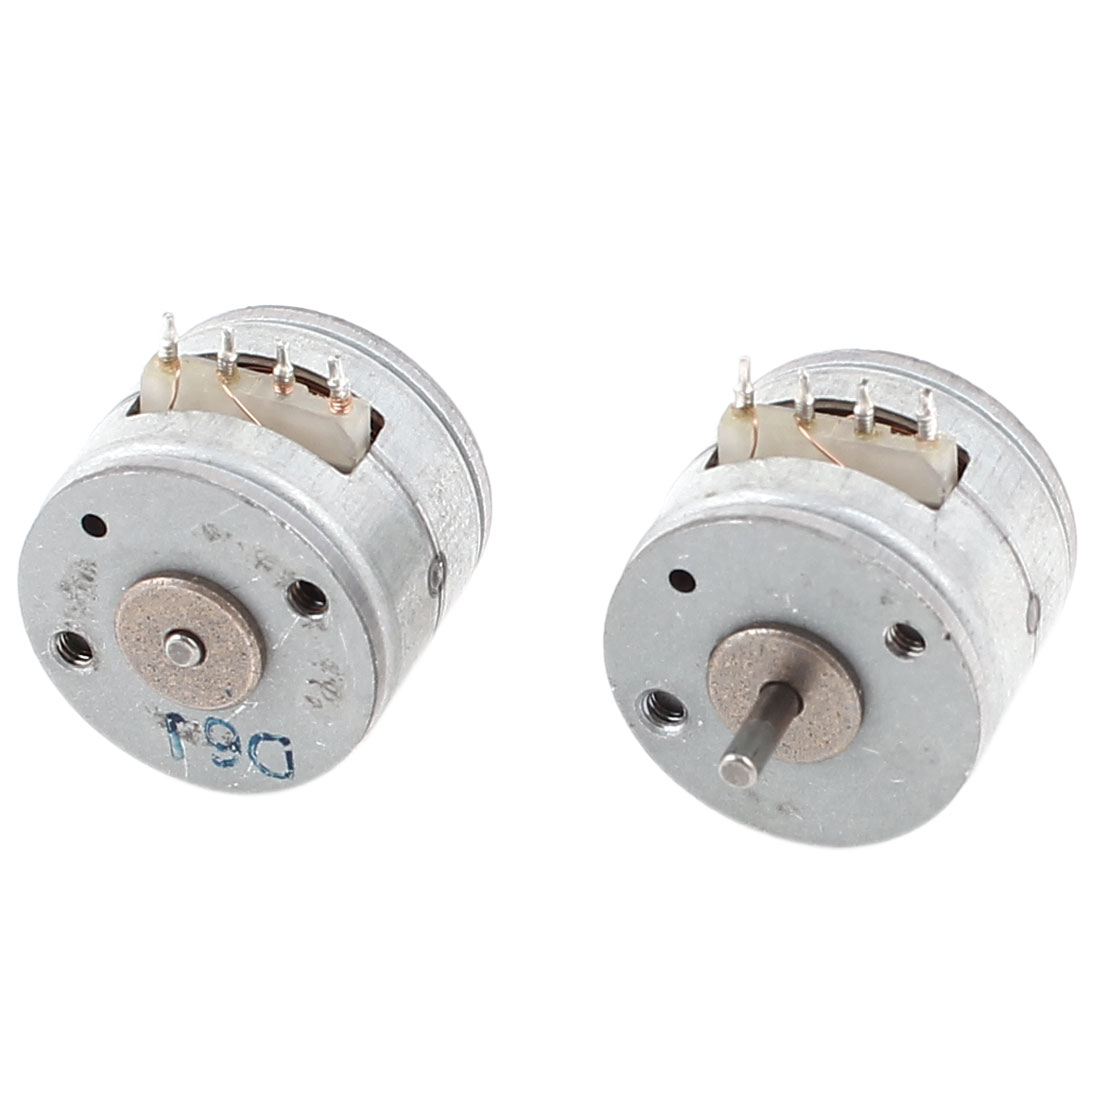 2Pcs 1000RPM Two Phase Four Wire 15mm Metal Stepper Motor Silver Tone